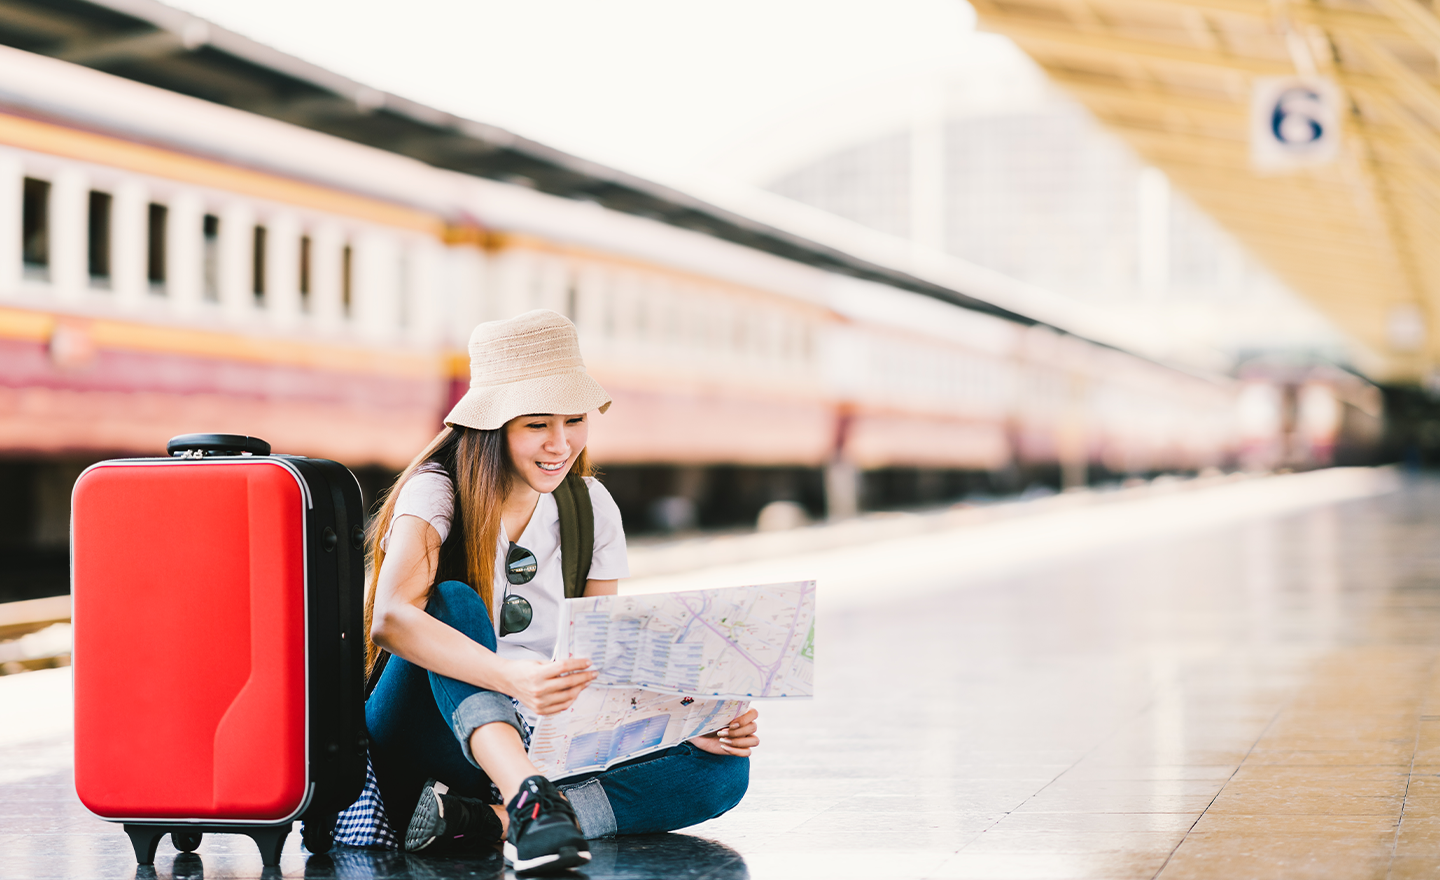 Young woman wearing hat sits on train platform with train behind her. She's looking at a map with her travel bag on the platform beside her.